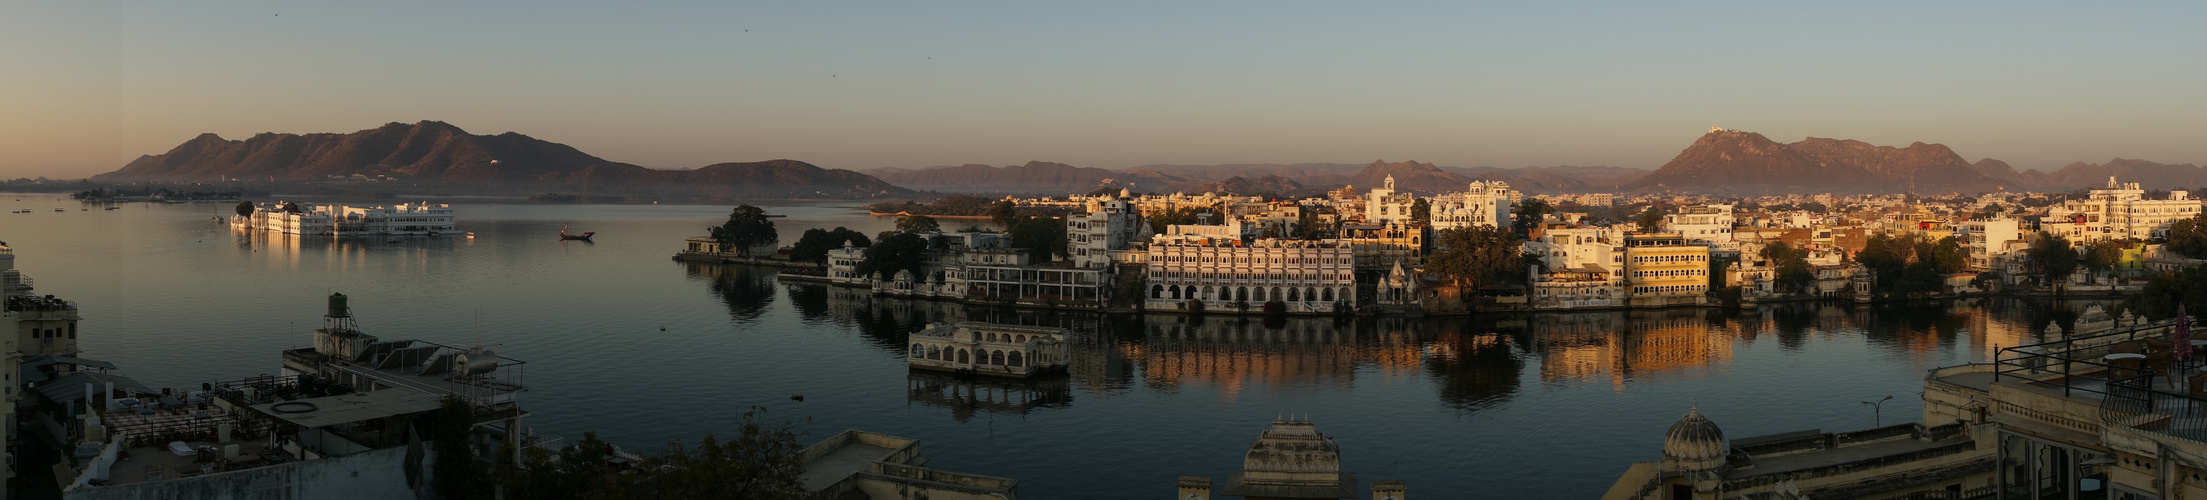 Udaipur am Morgen